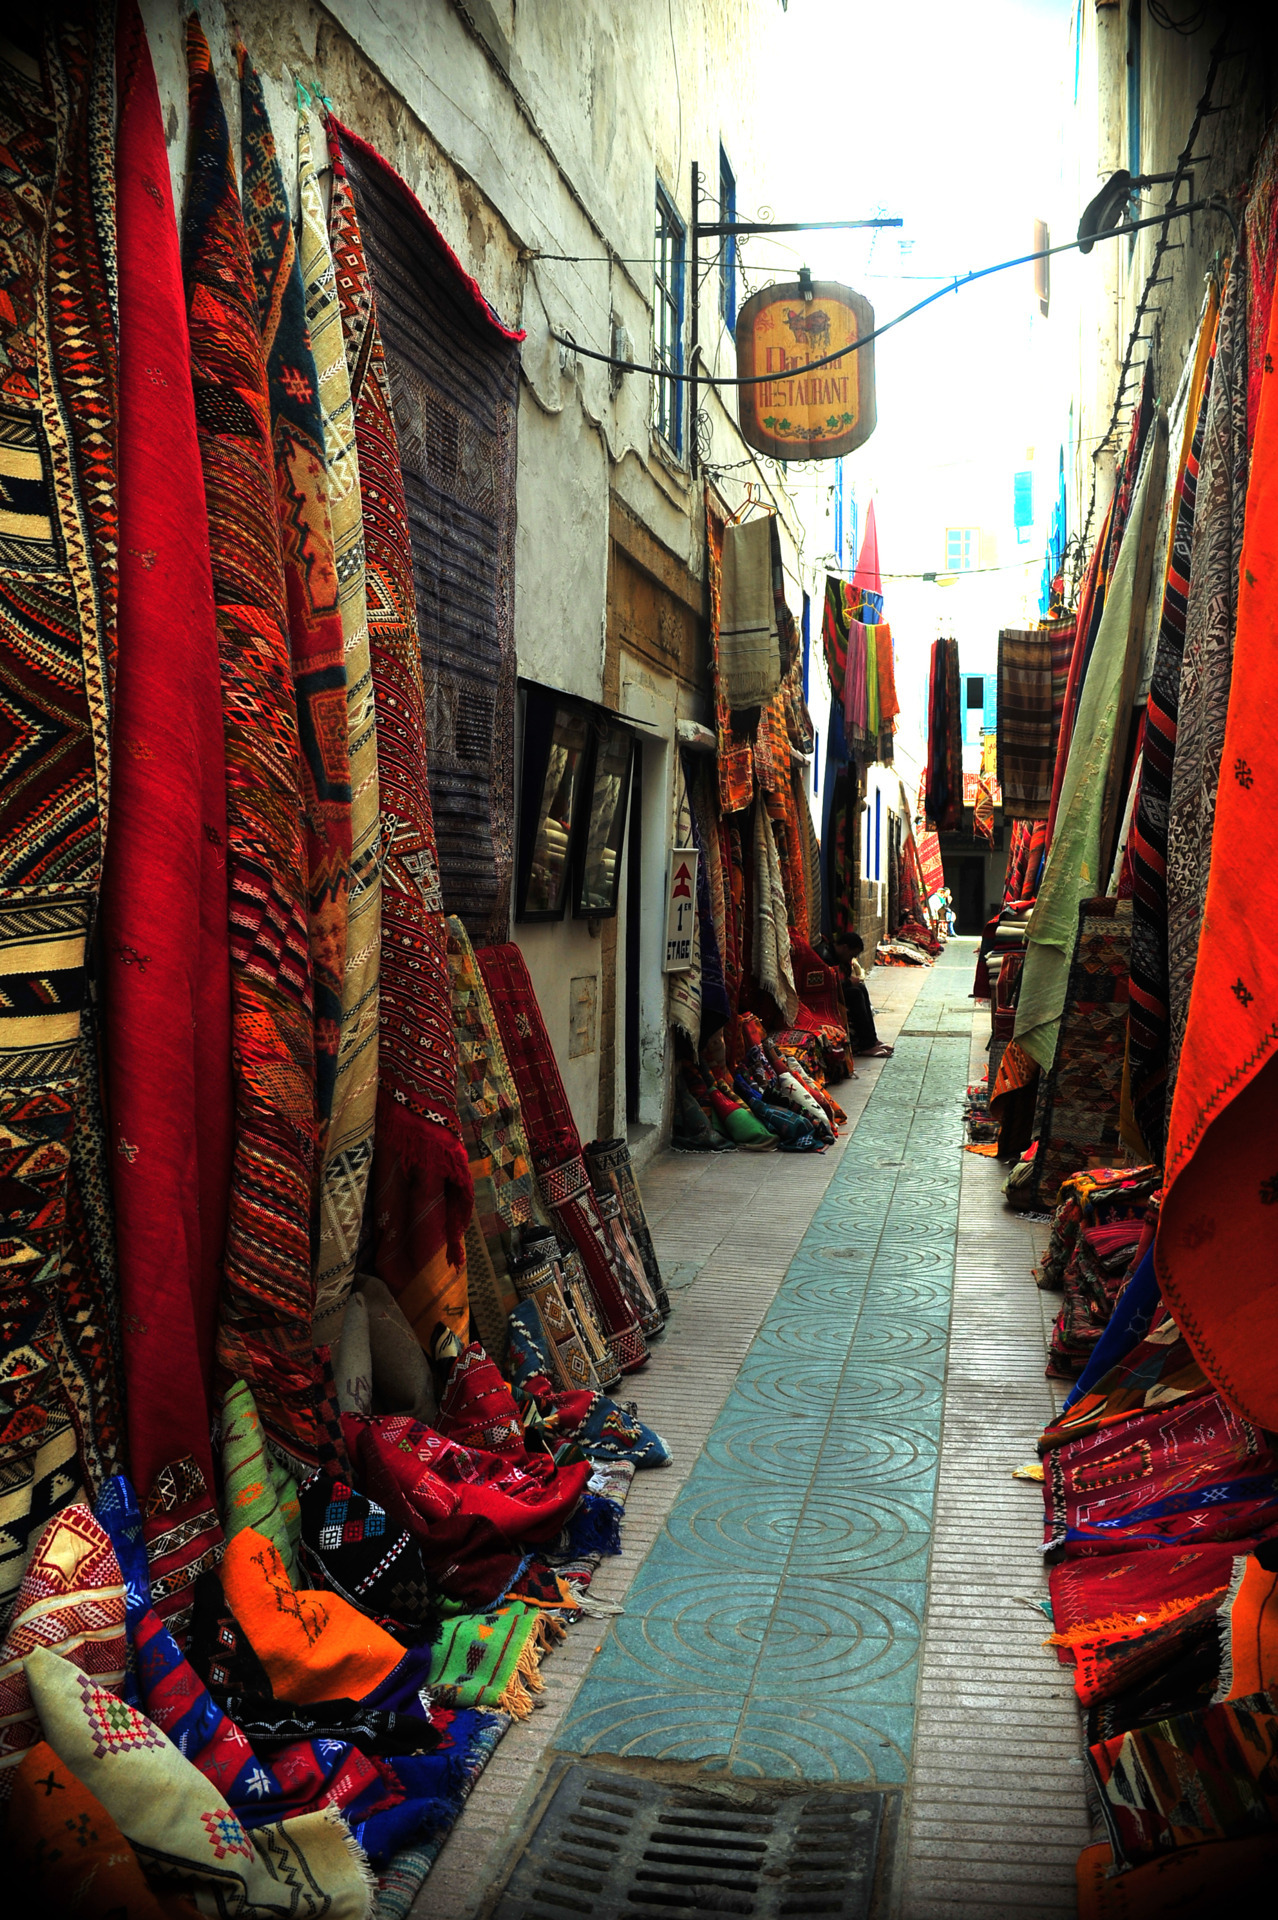 dynamicafrica:  Carpets line a narrow pathway in Essaouira, #Morroco image via svitoj